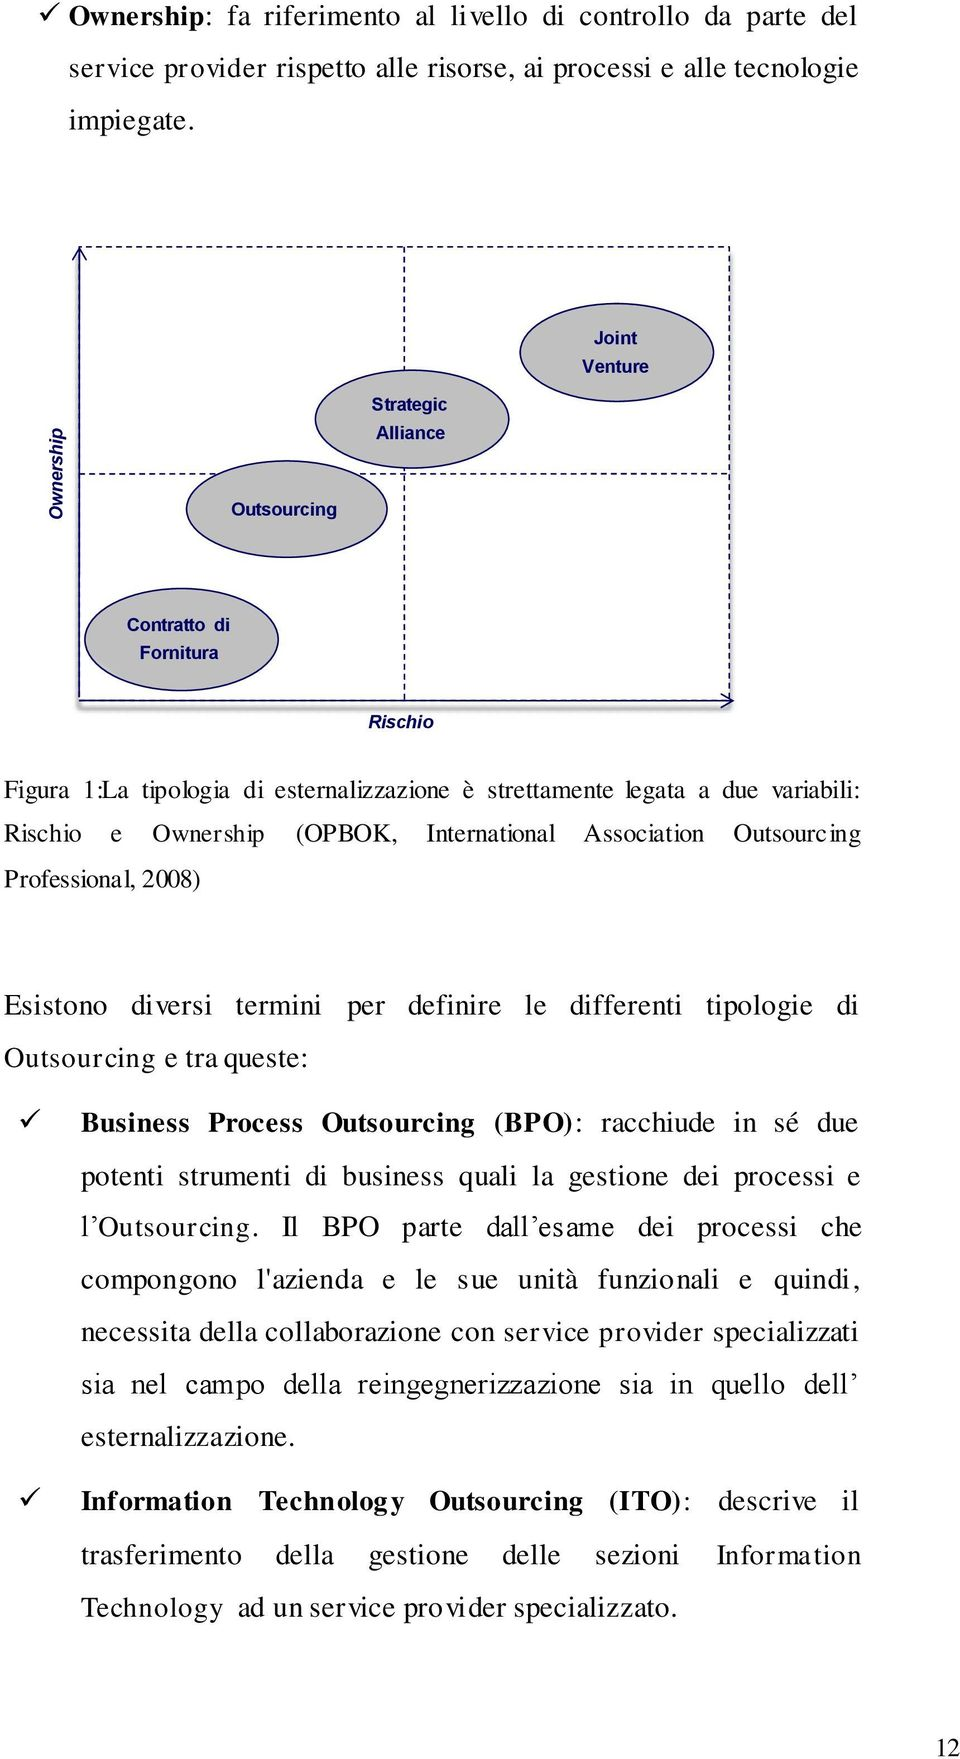 Association Outsourcing Professional, 2008) Esistono diversi termini per definire le differenti tipologie di Outsourcing e tra queste: Business Process Outsourcing (BPO): racchiude in sé due potenti